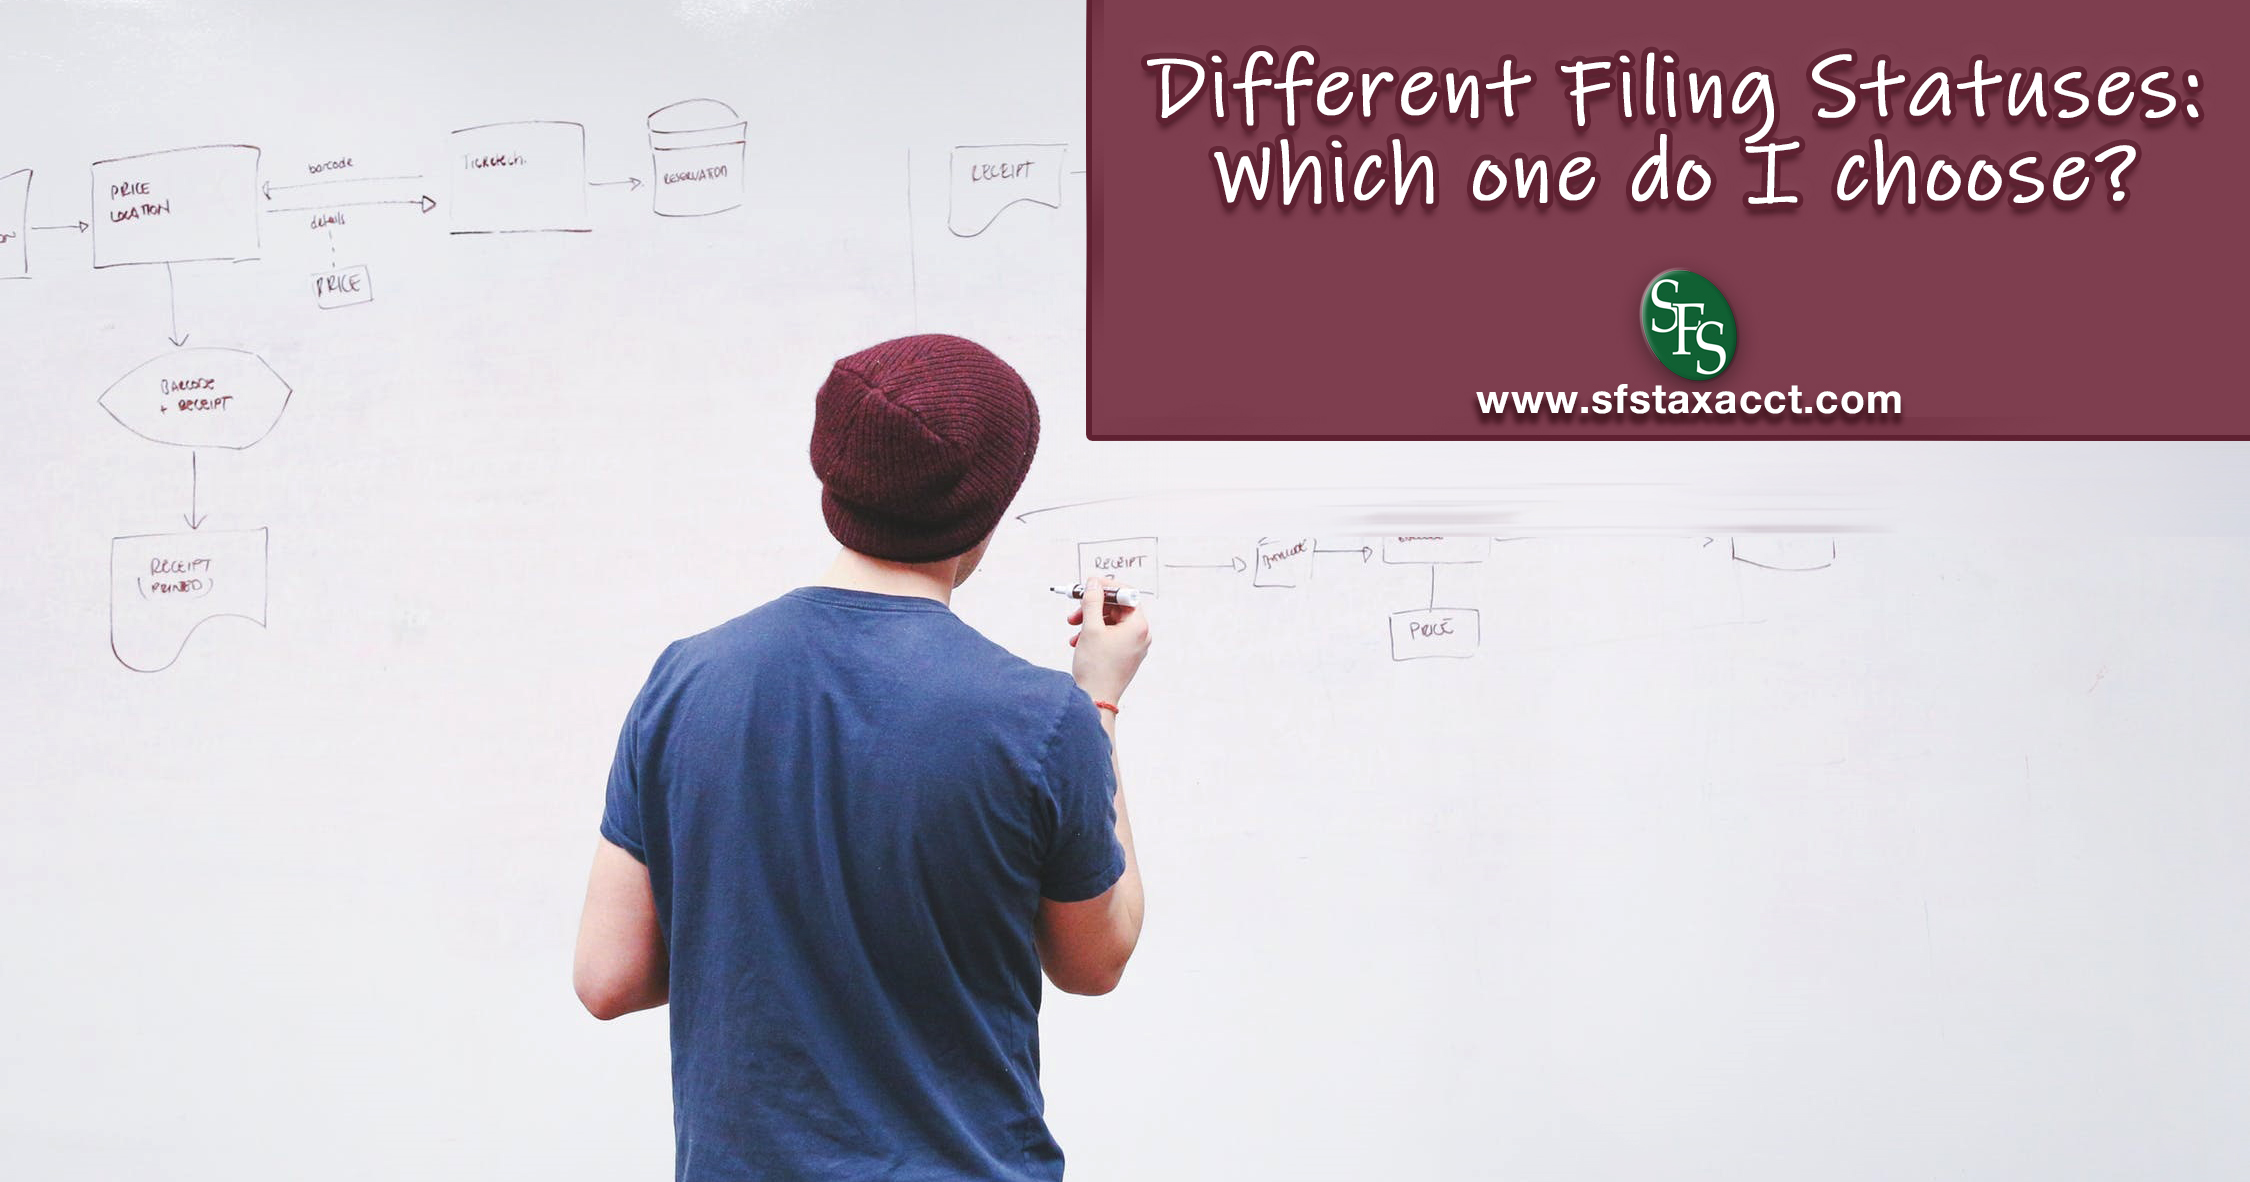 Help Taxpayers Understand Different Filing Statuses, child, whiteboard, writing, drawing, graph